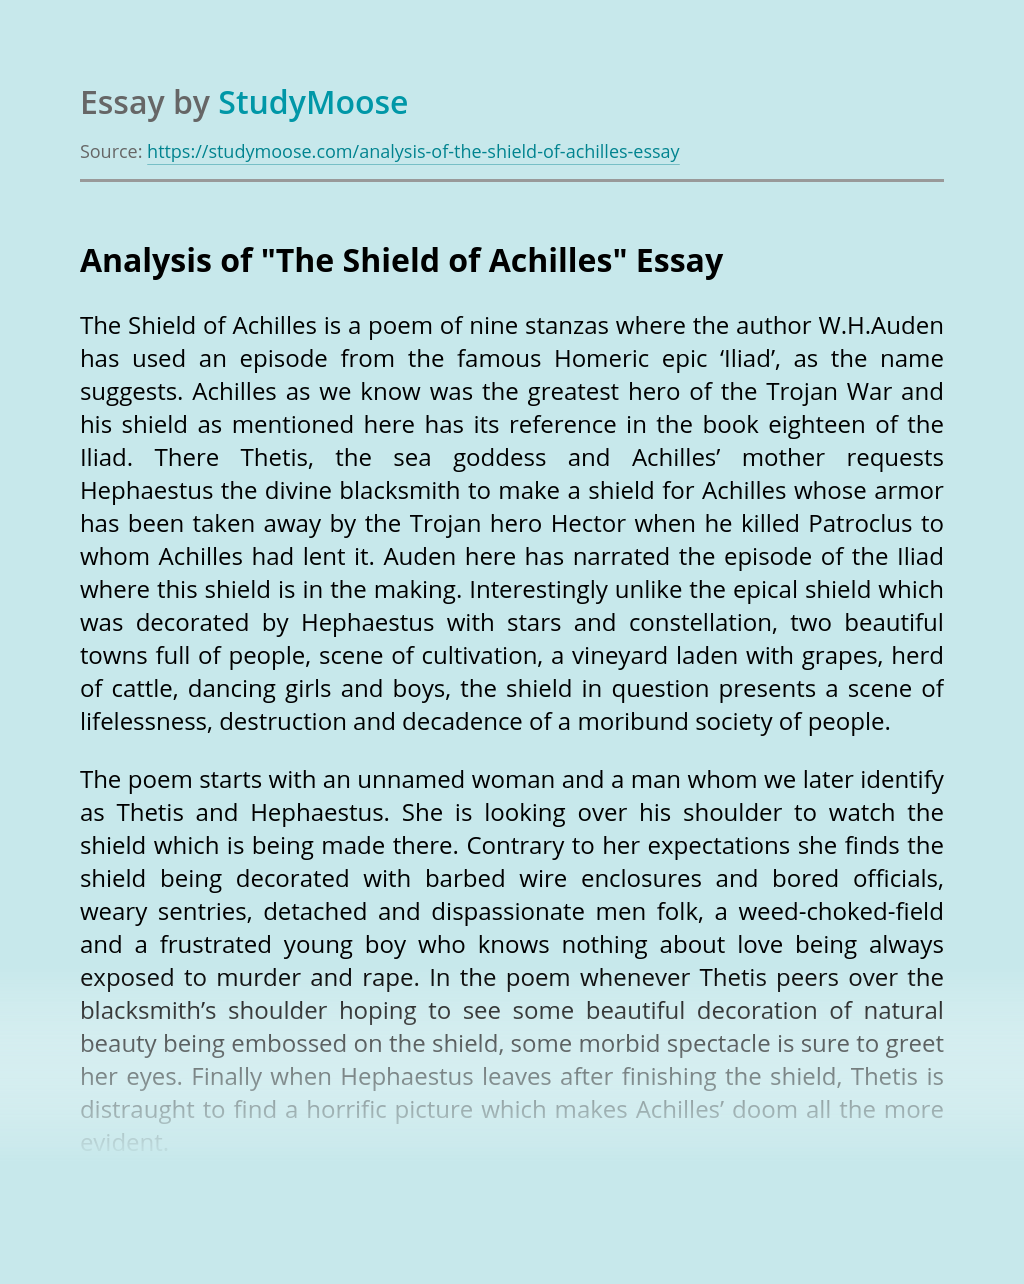 """Analysis of """"The Shield of Achilles"""""""